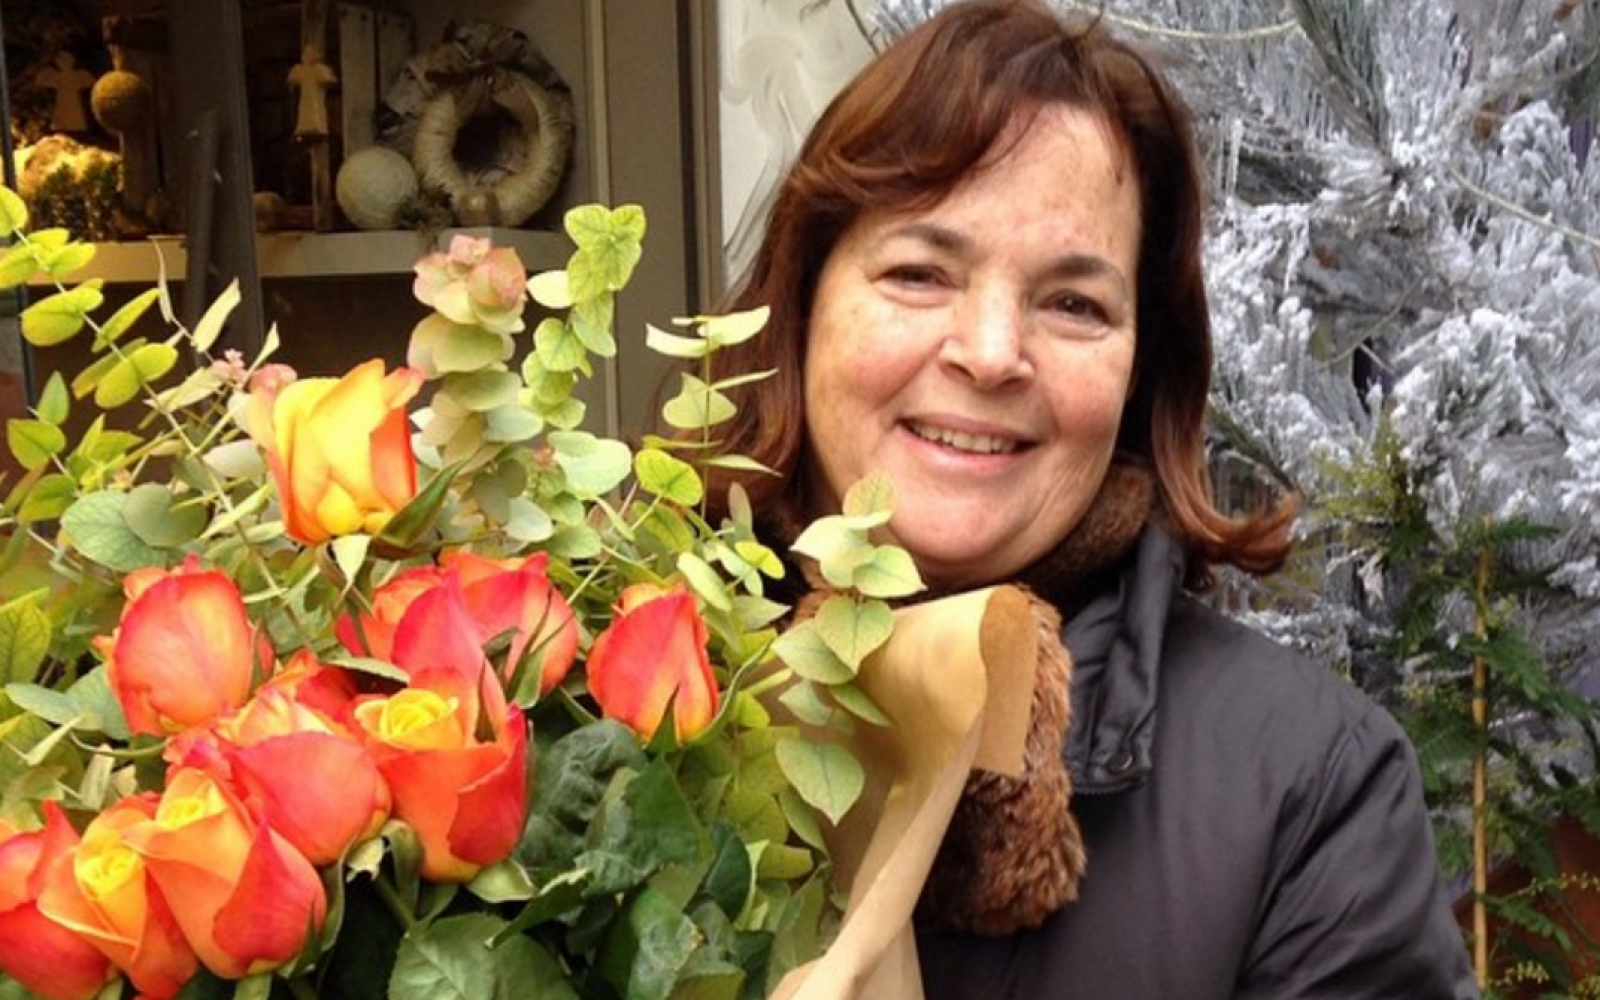 15 Ina Garten Quotes That Perfectly Explain Why She's Living The Life You Wish You Had